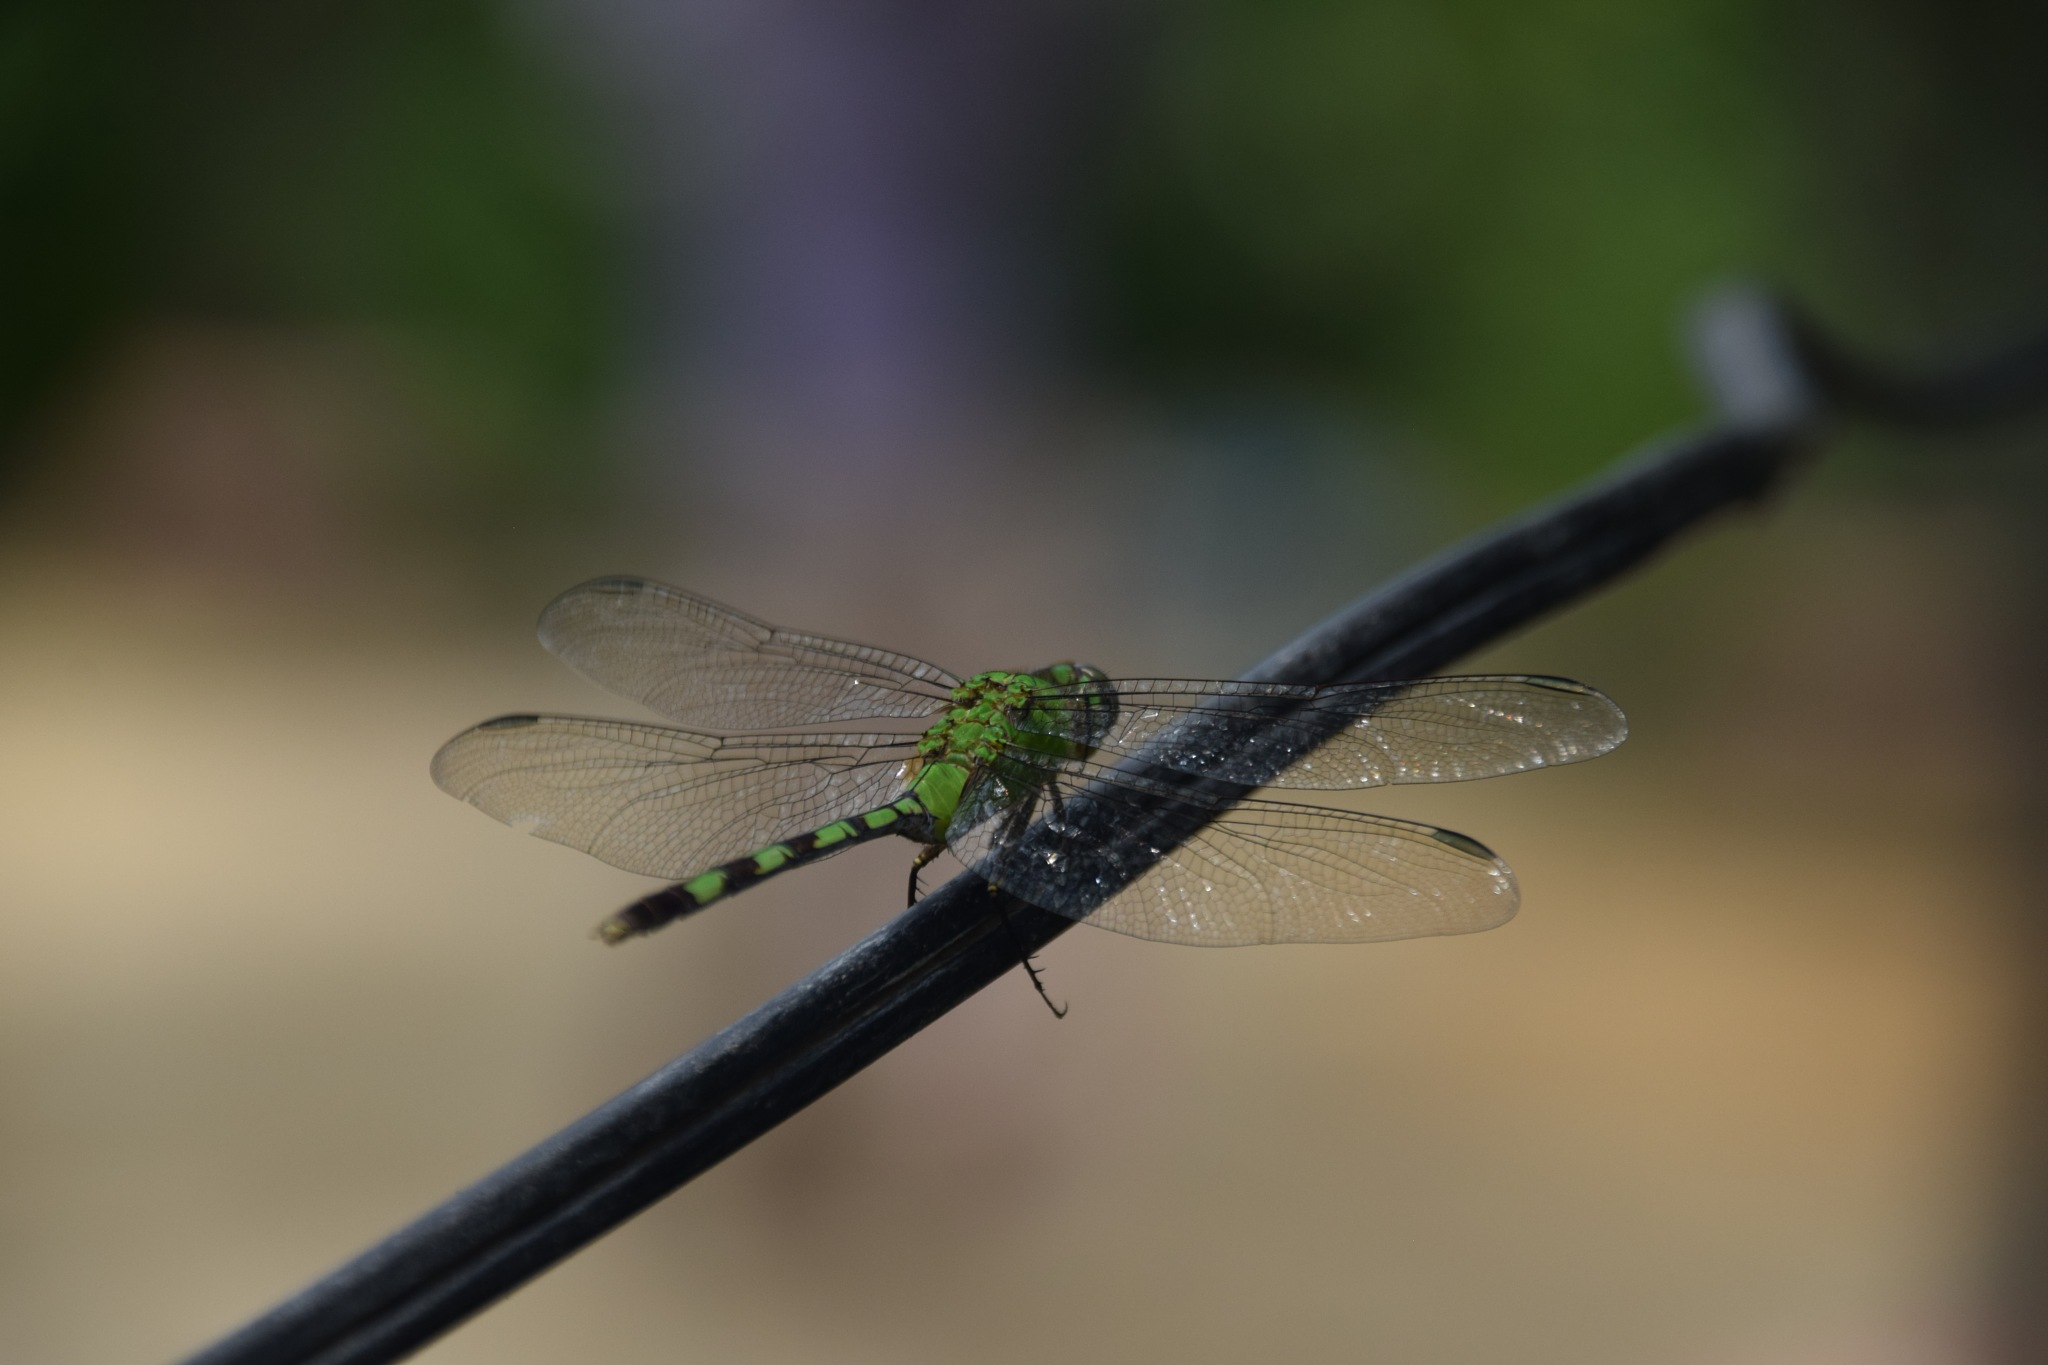 dragonfly strong agaist the wind by Sophia von Wrangell